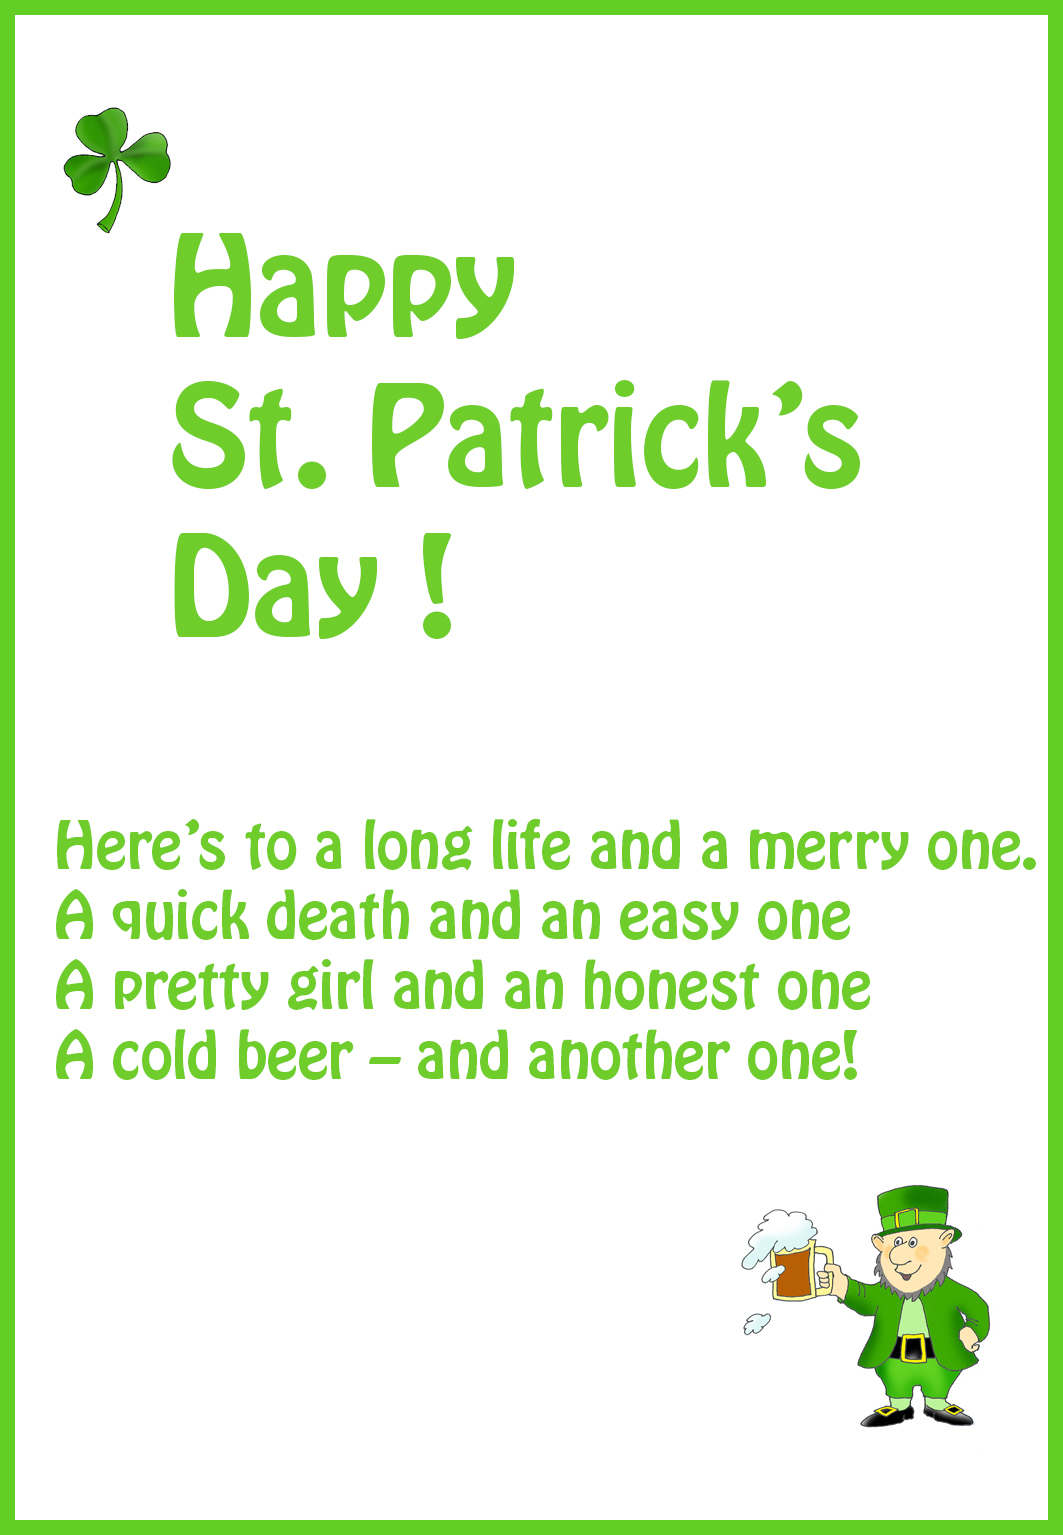 St patricks day ecards